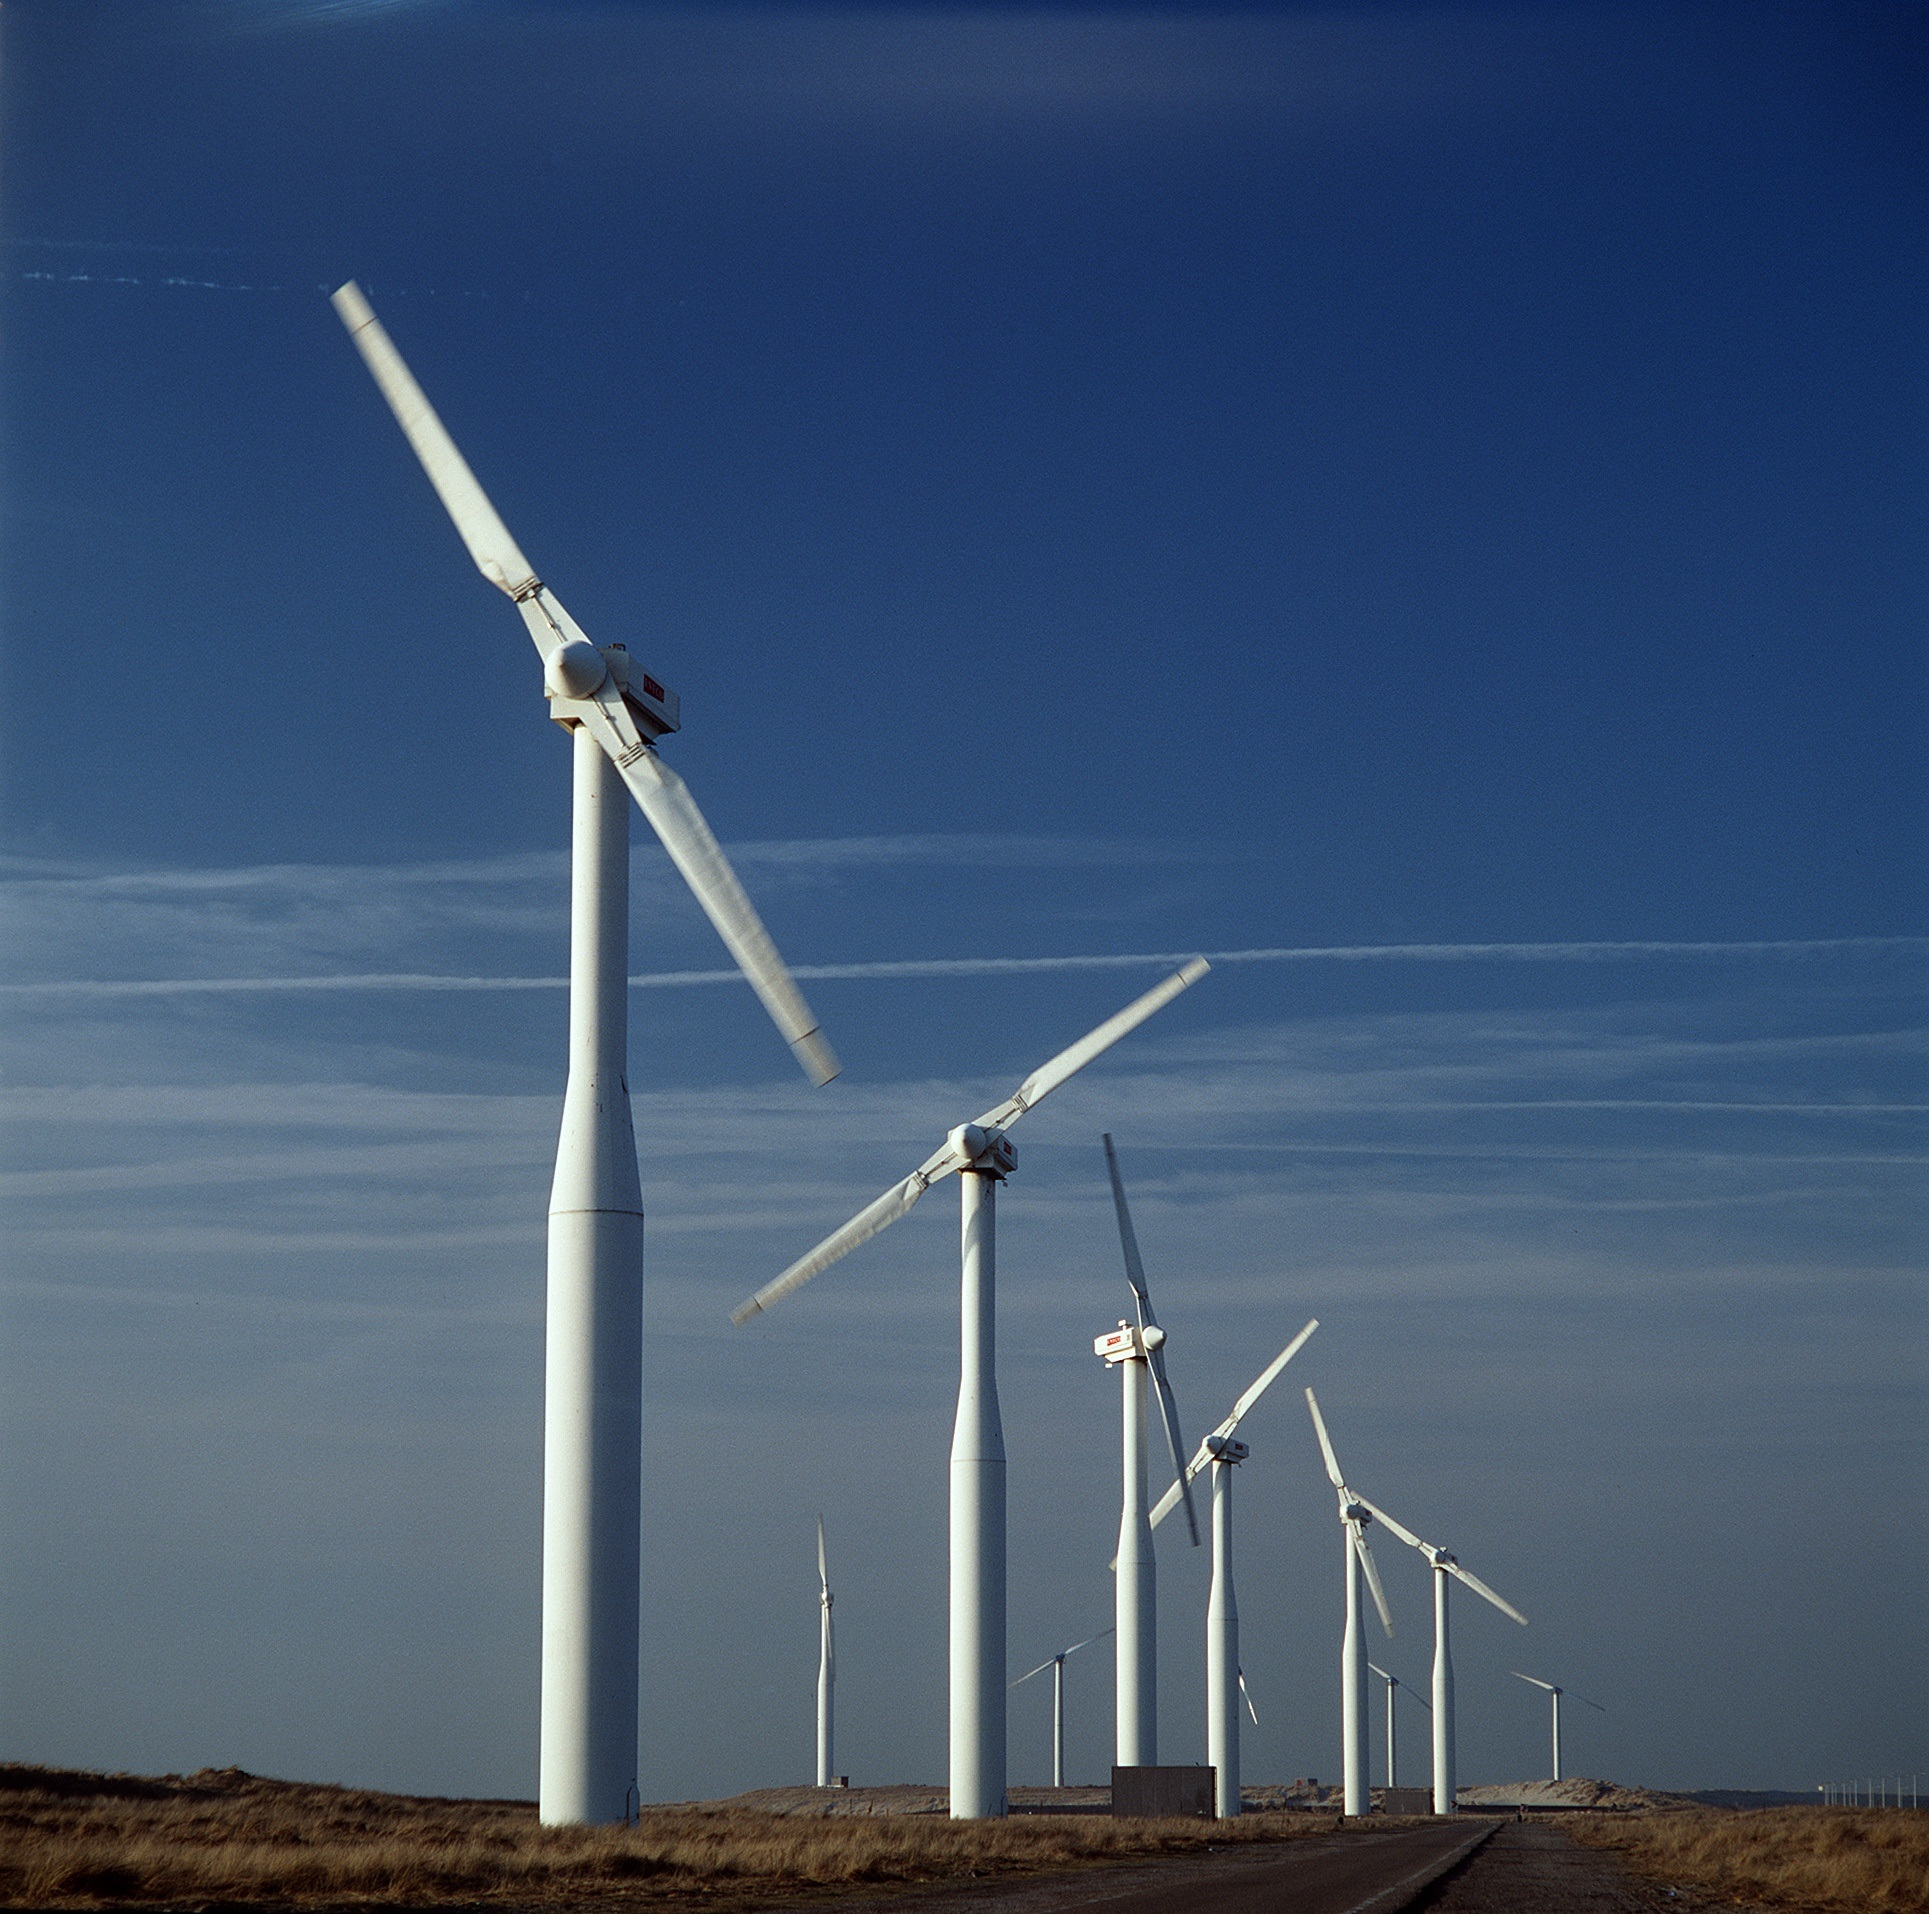 Windmills on the Way, Electricity, Mill, Path, Route, HQ Photo